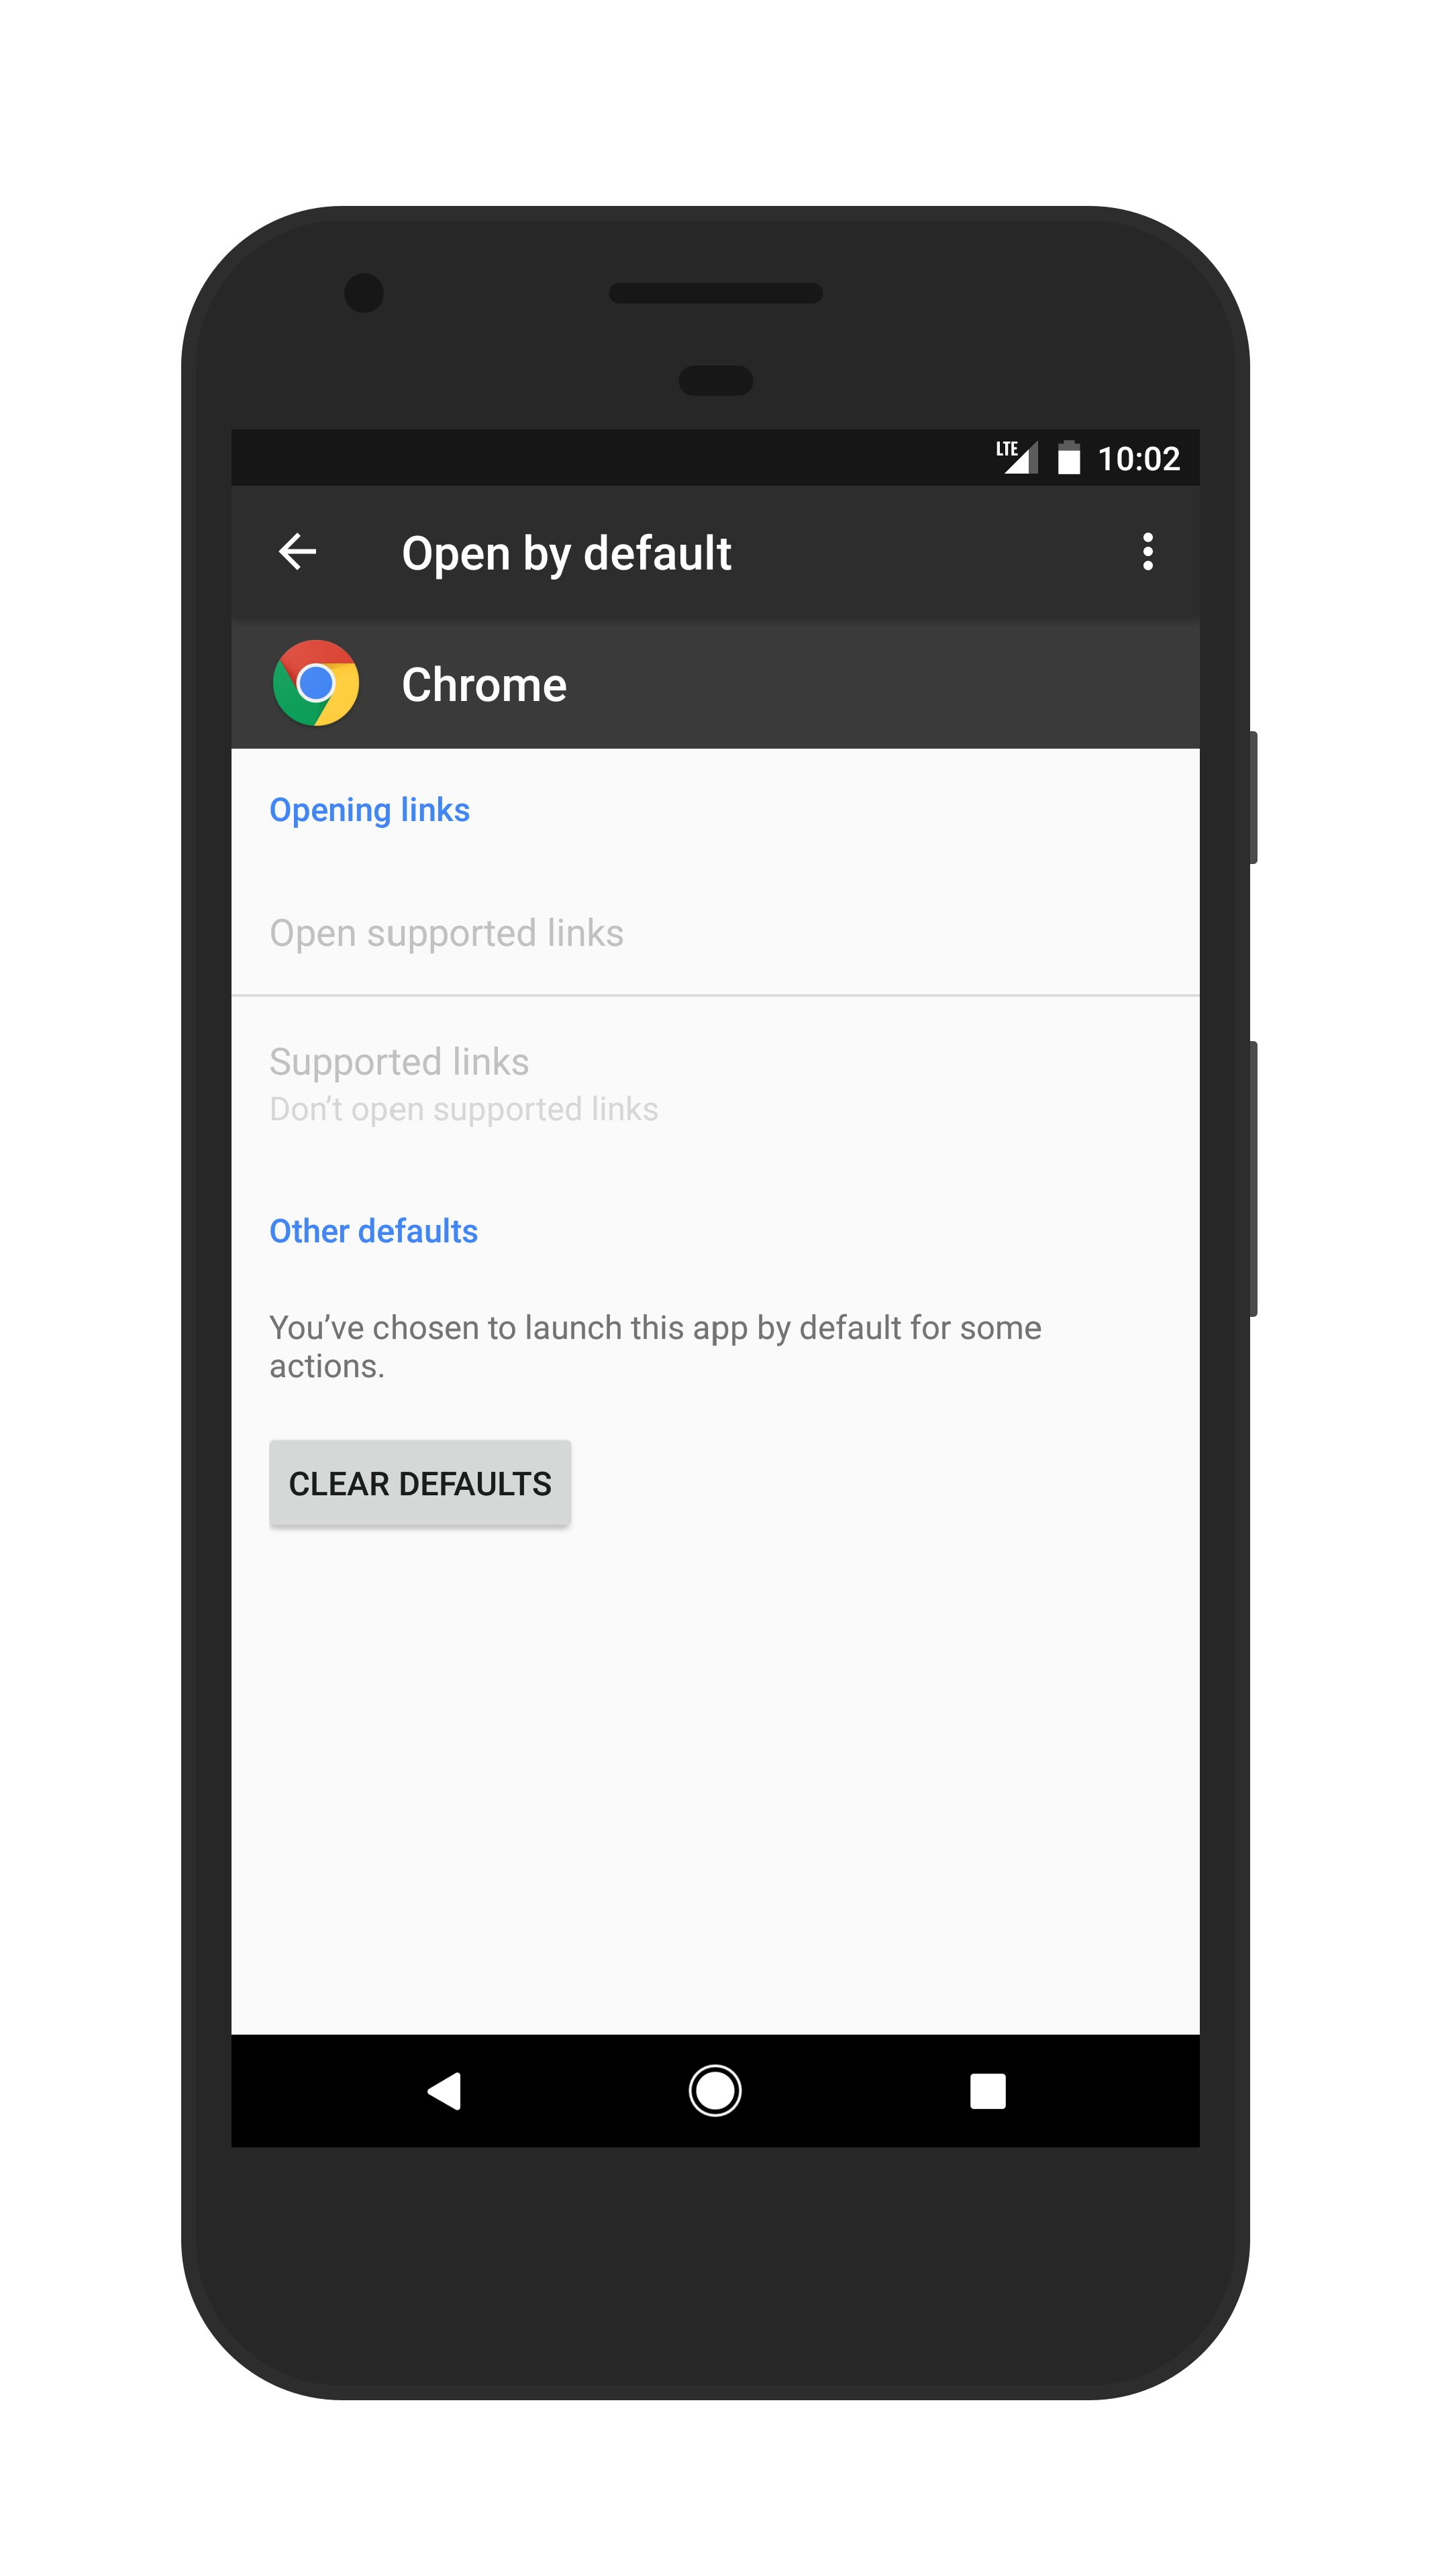 Camera Clear Browser On Android Phone how to change or clear default app settings in android apps defaults